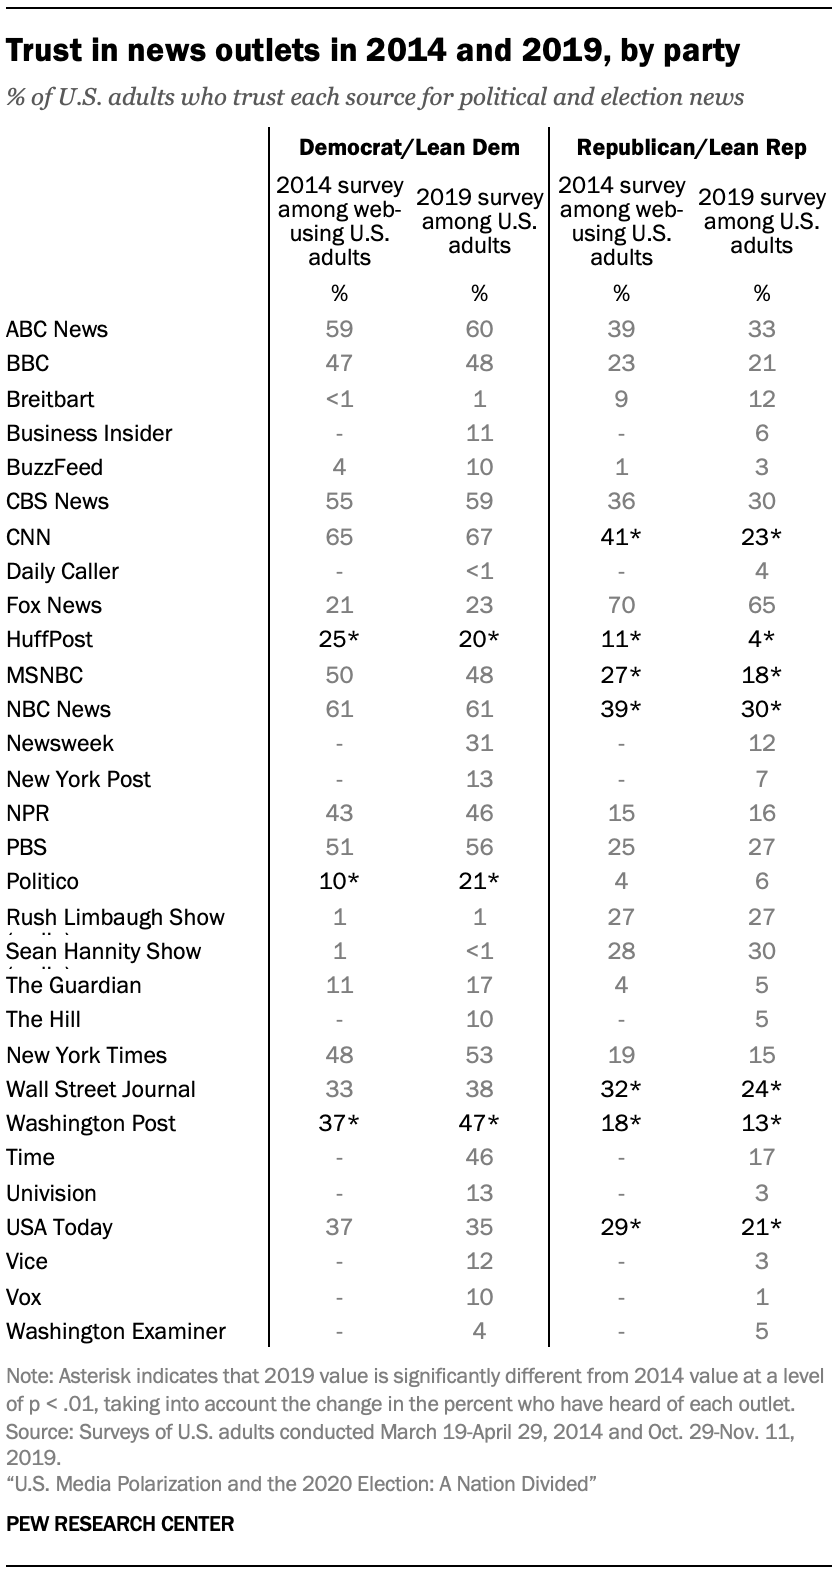 Trust in news outlets in 2014 and 2019, by party